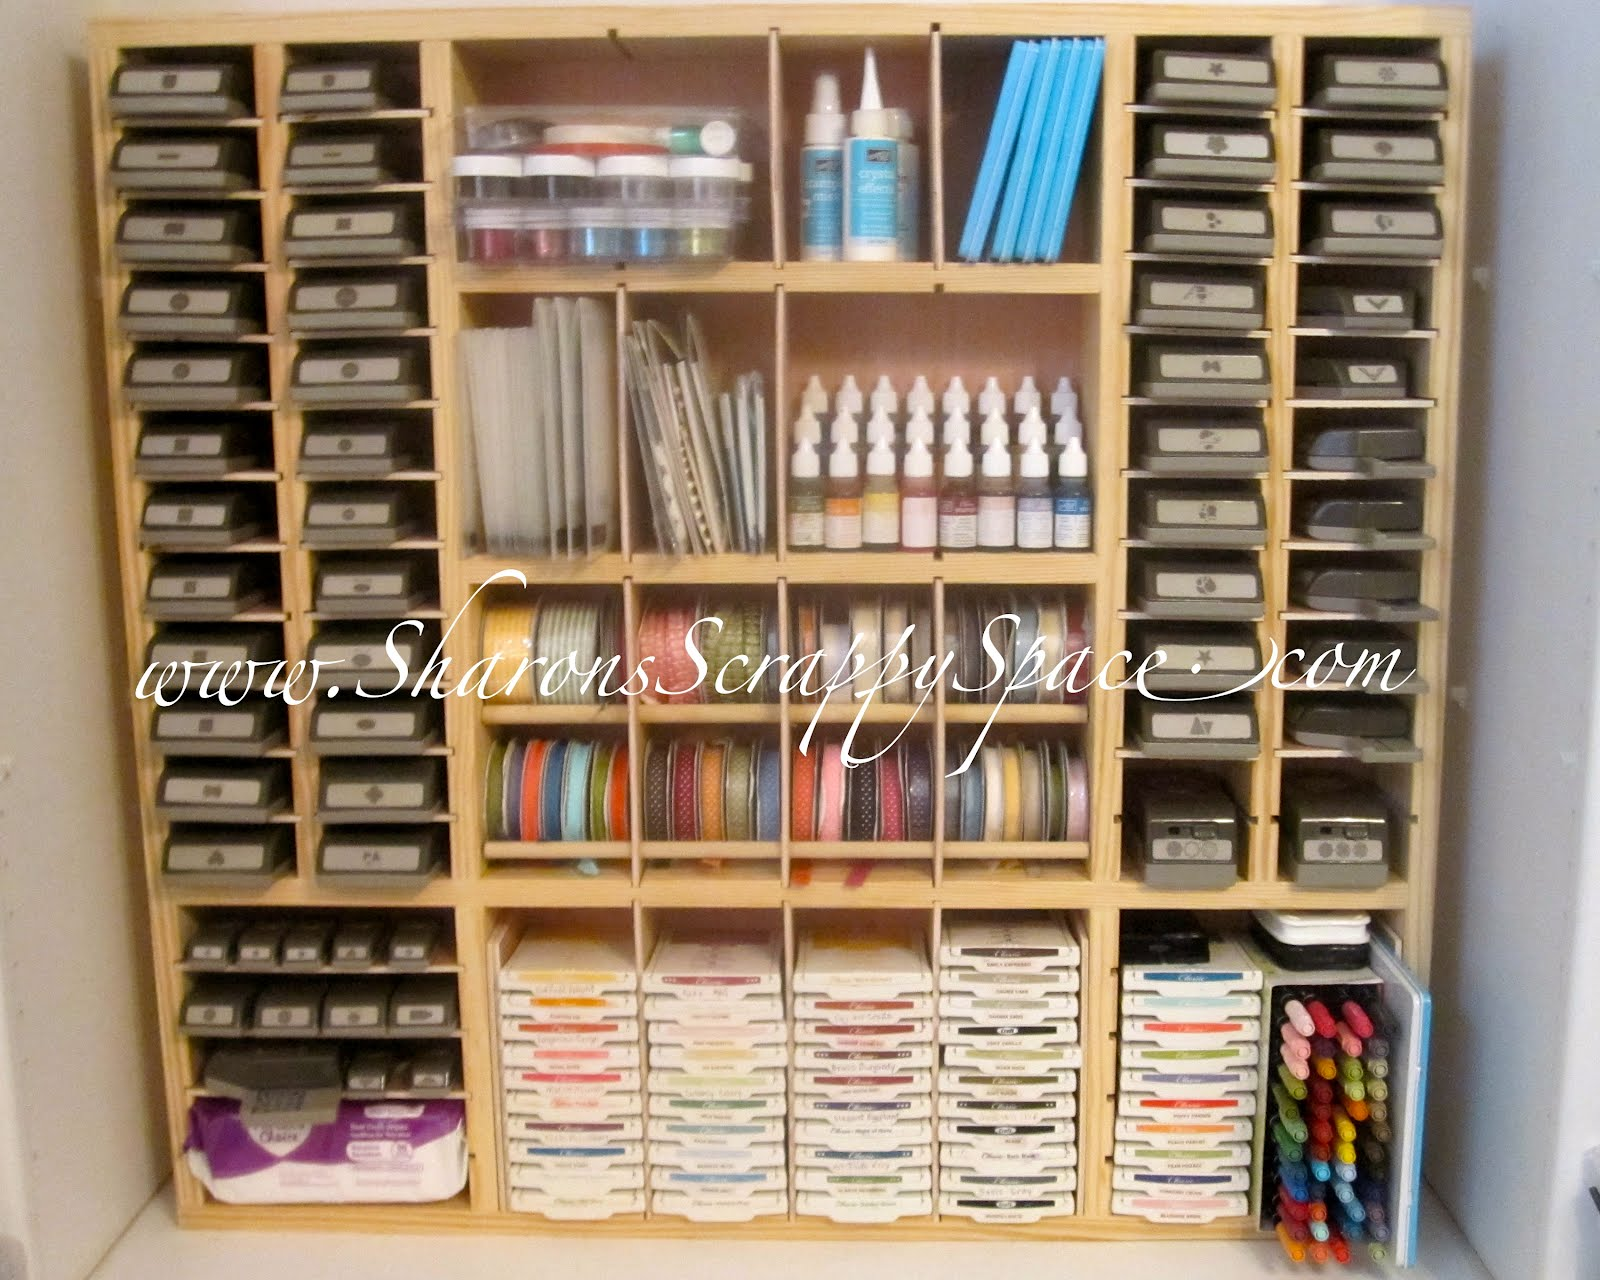 Attrayant The Ultra Scrapbook Storage Unit Is The Most Versatile Of All Sharonu0027s  Scrappy Space Storage Units! It Will Hold All Your Punches And Just About  Any ...